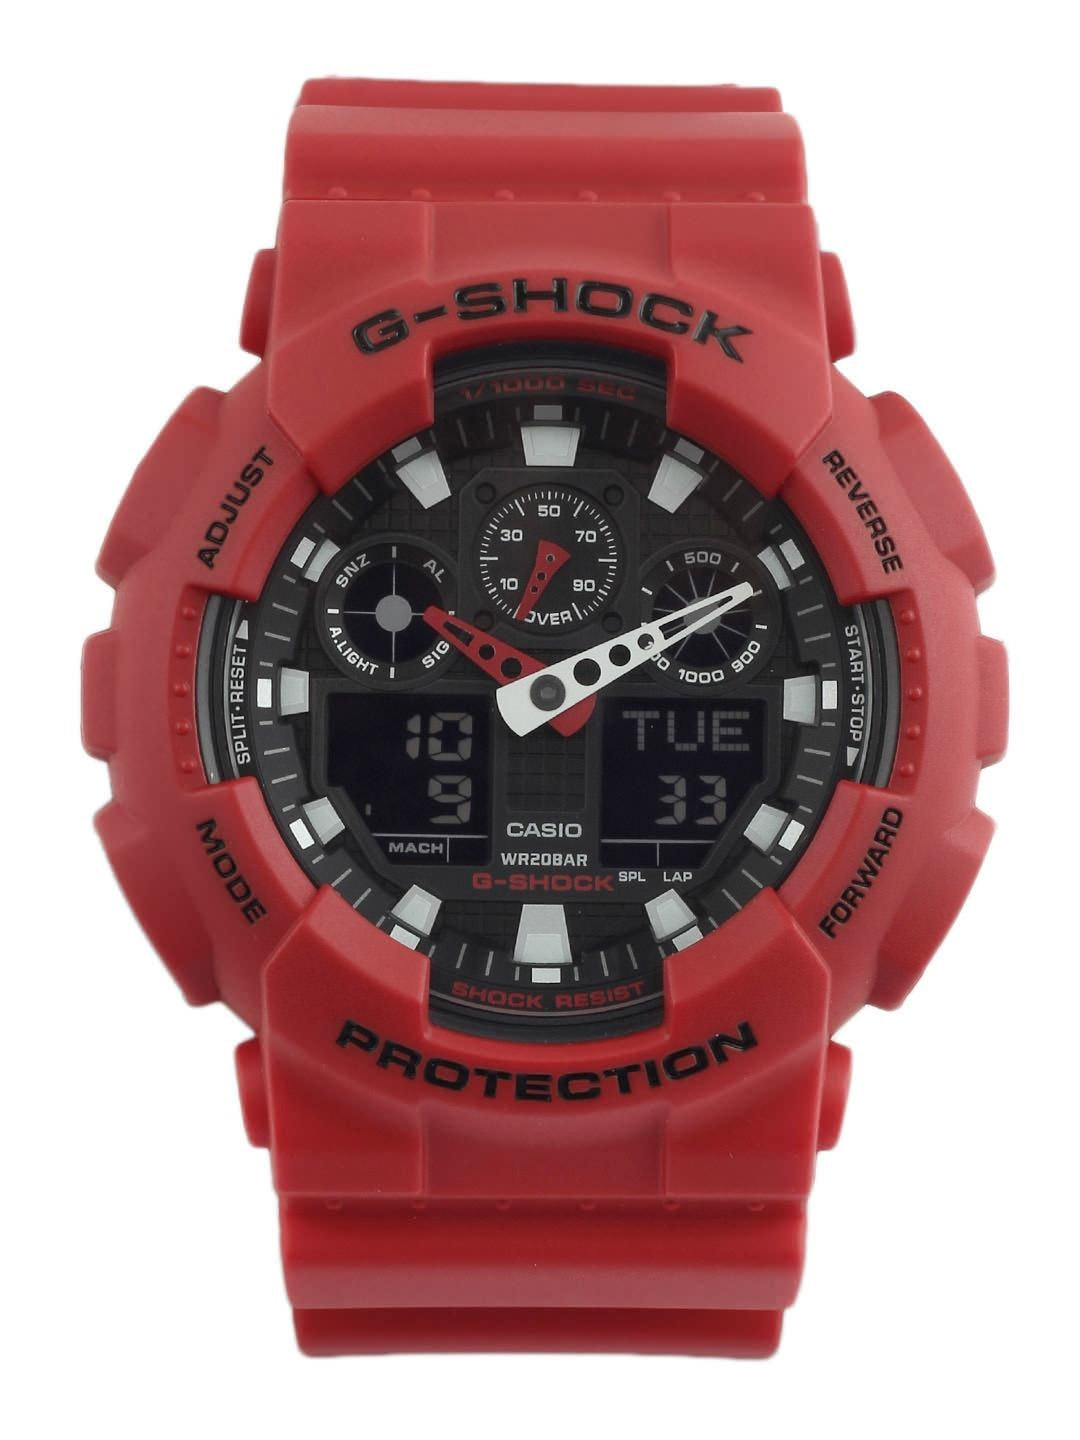 d111d898ed0 G Shock - Buy G Shock watches Online in India